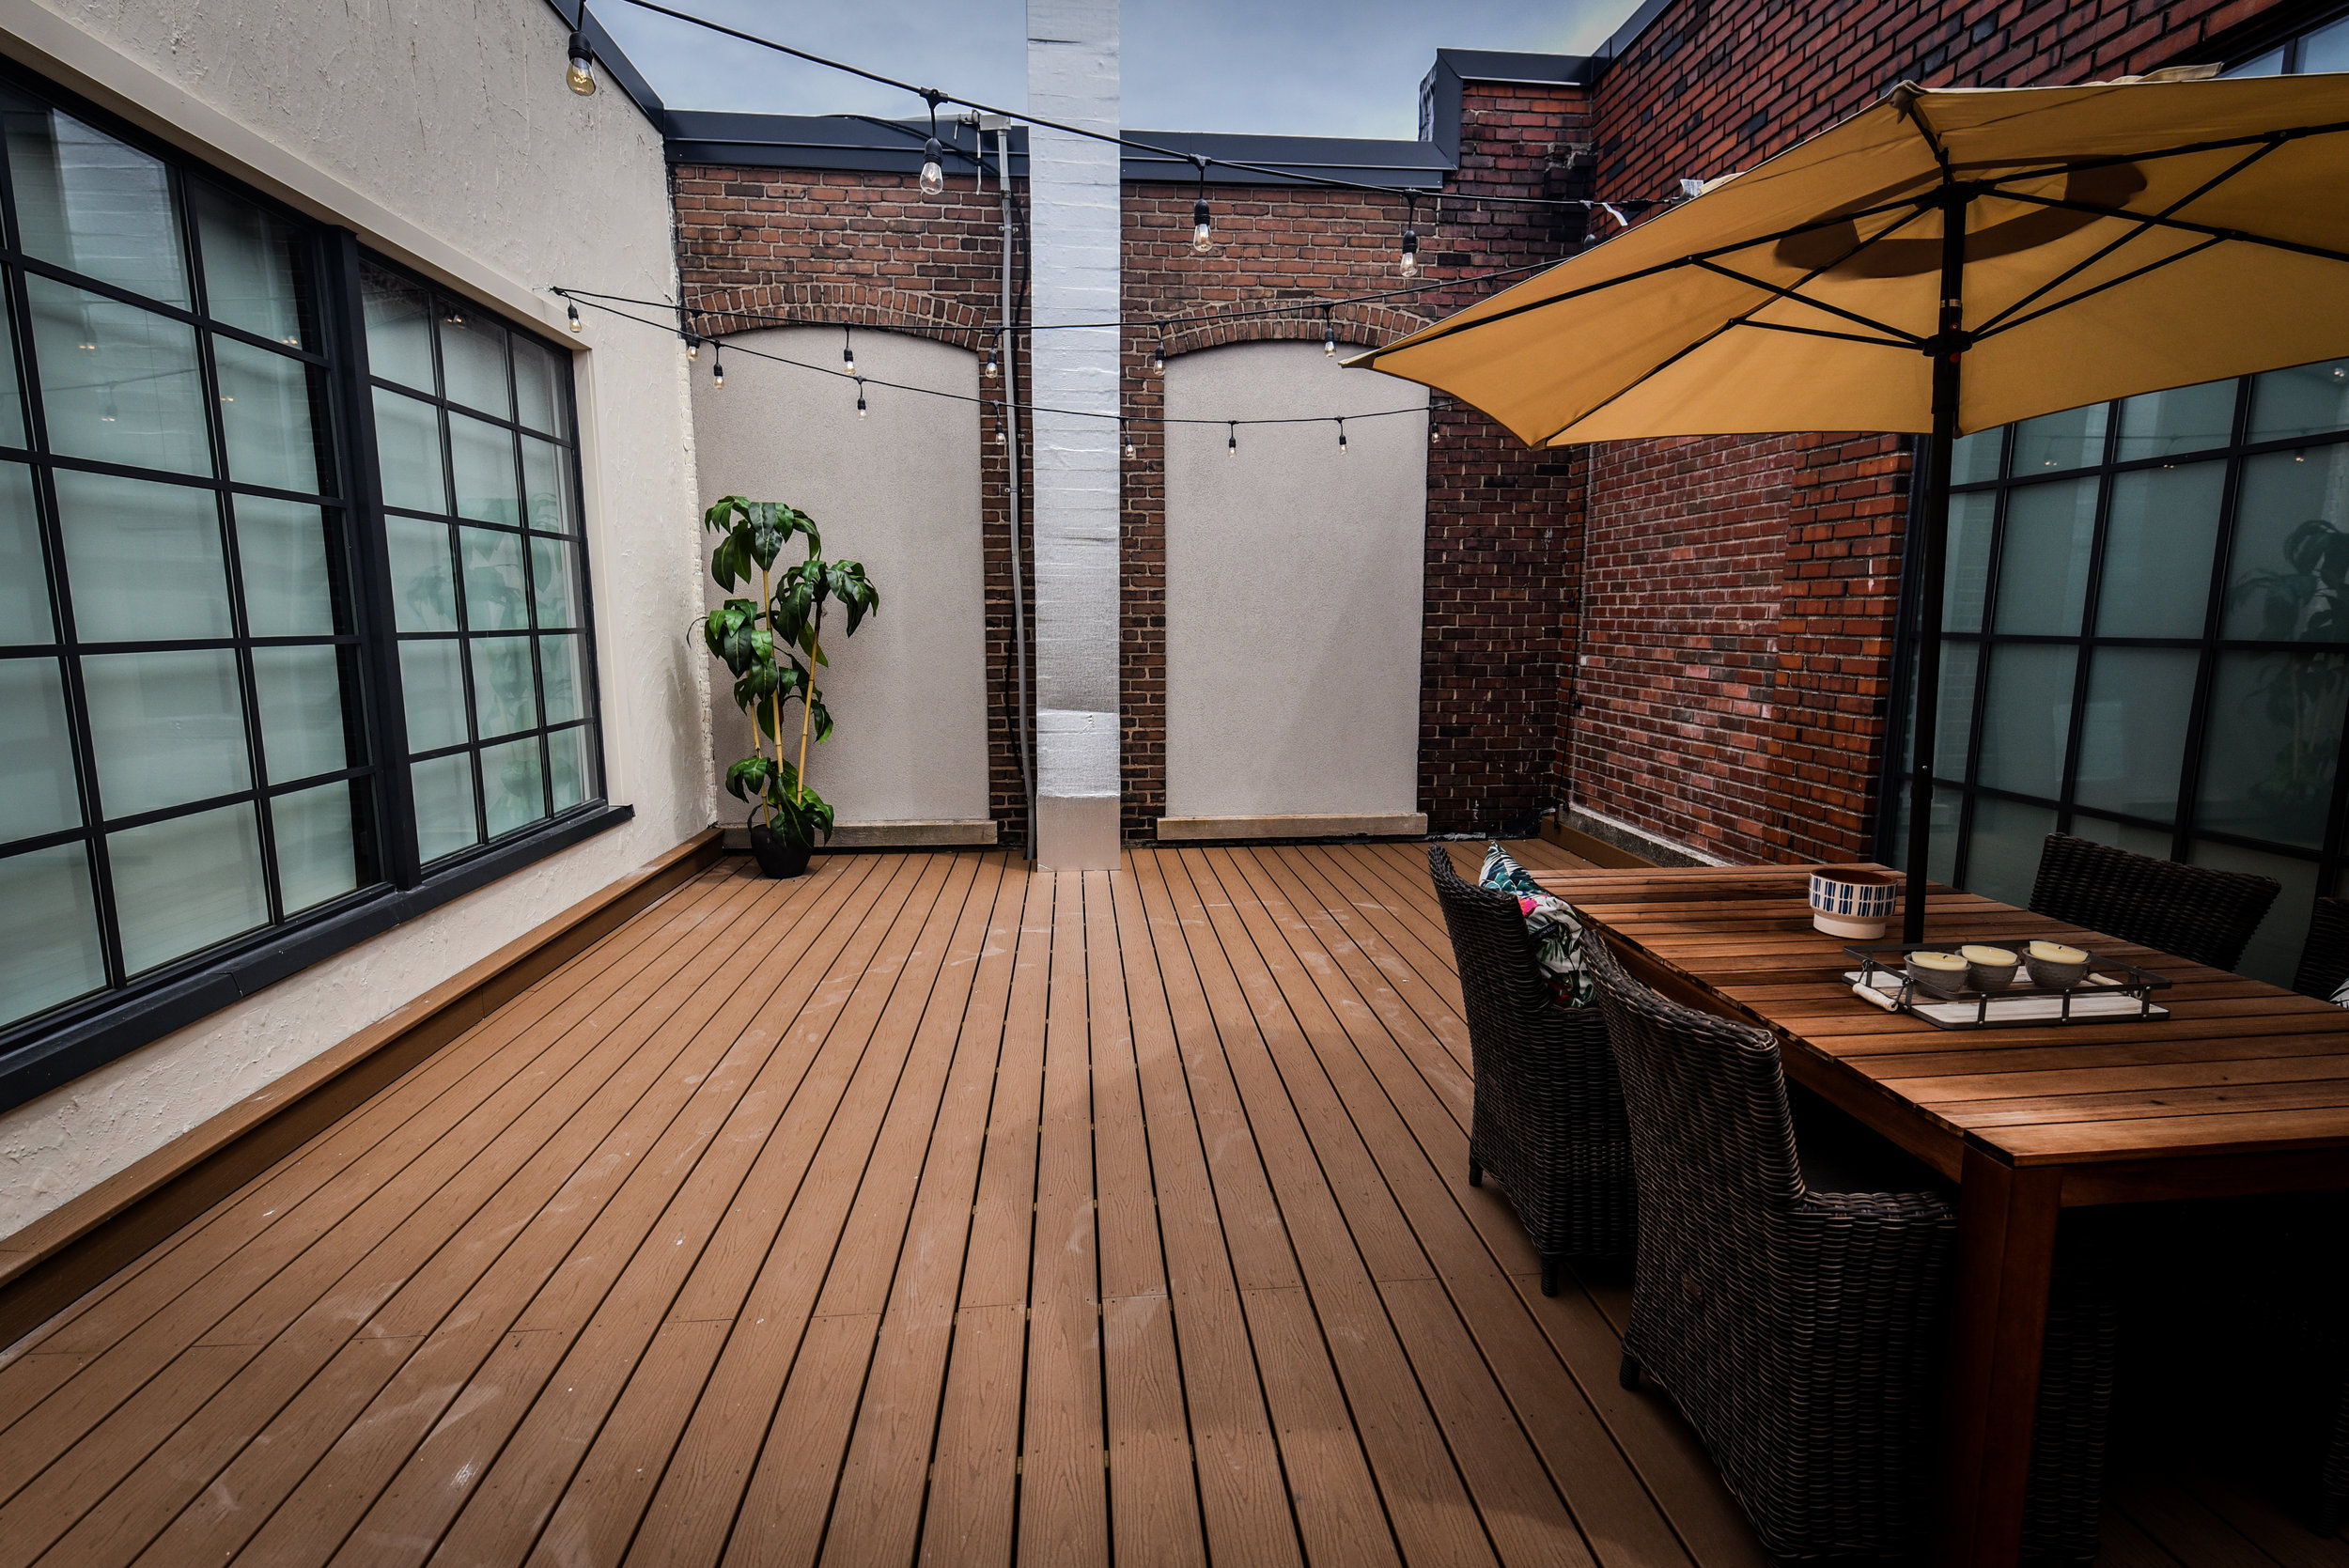 1255-lofts-penthouse-rochester-ny-rent.jpg